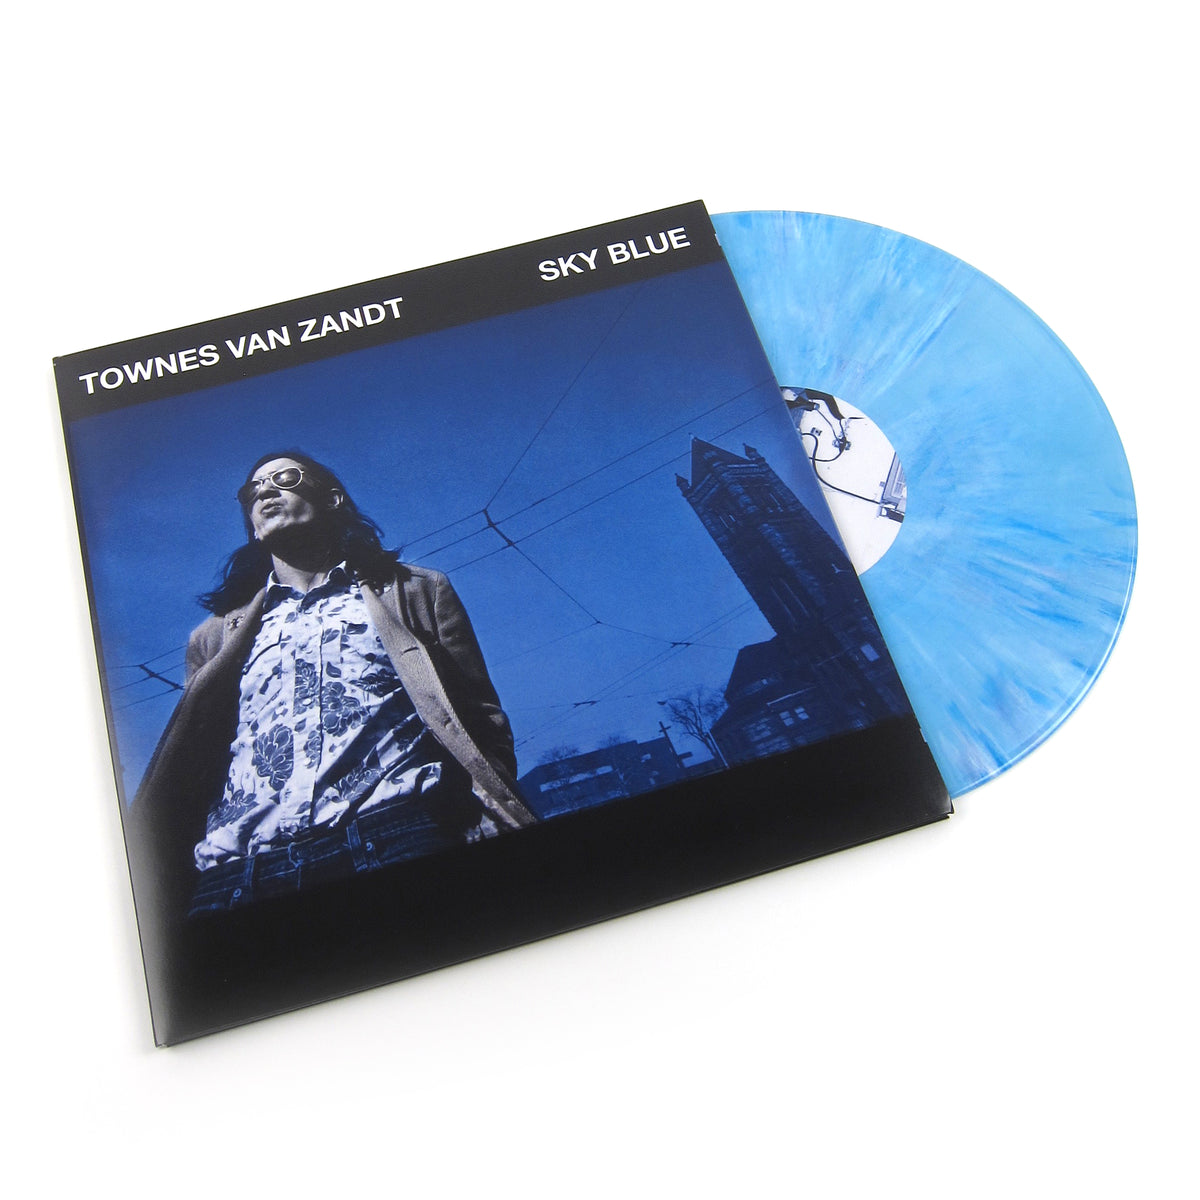 Townes Van Zandt: Sky Blue (Indie Exclusive Colored Vinyl) Vinyl LP